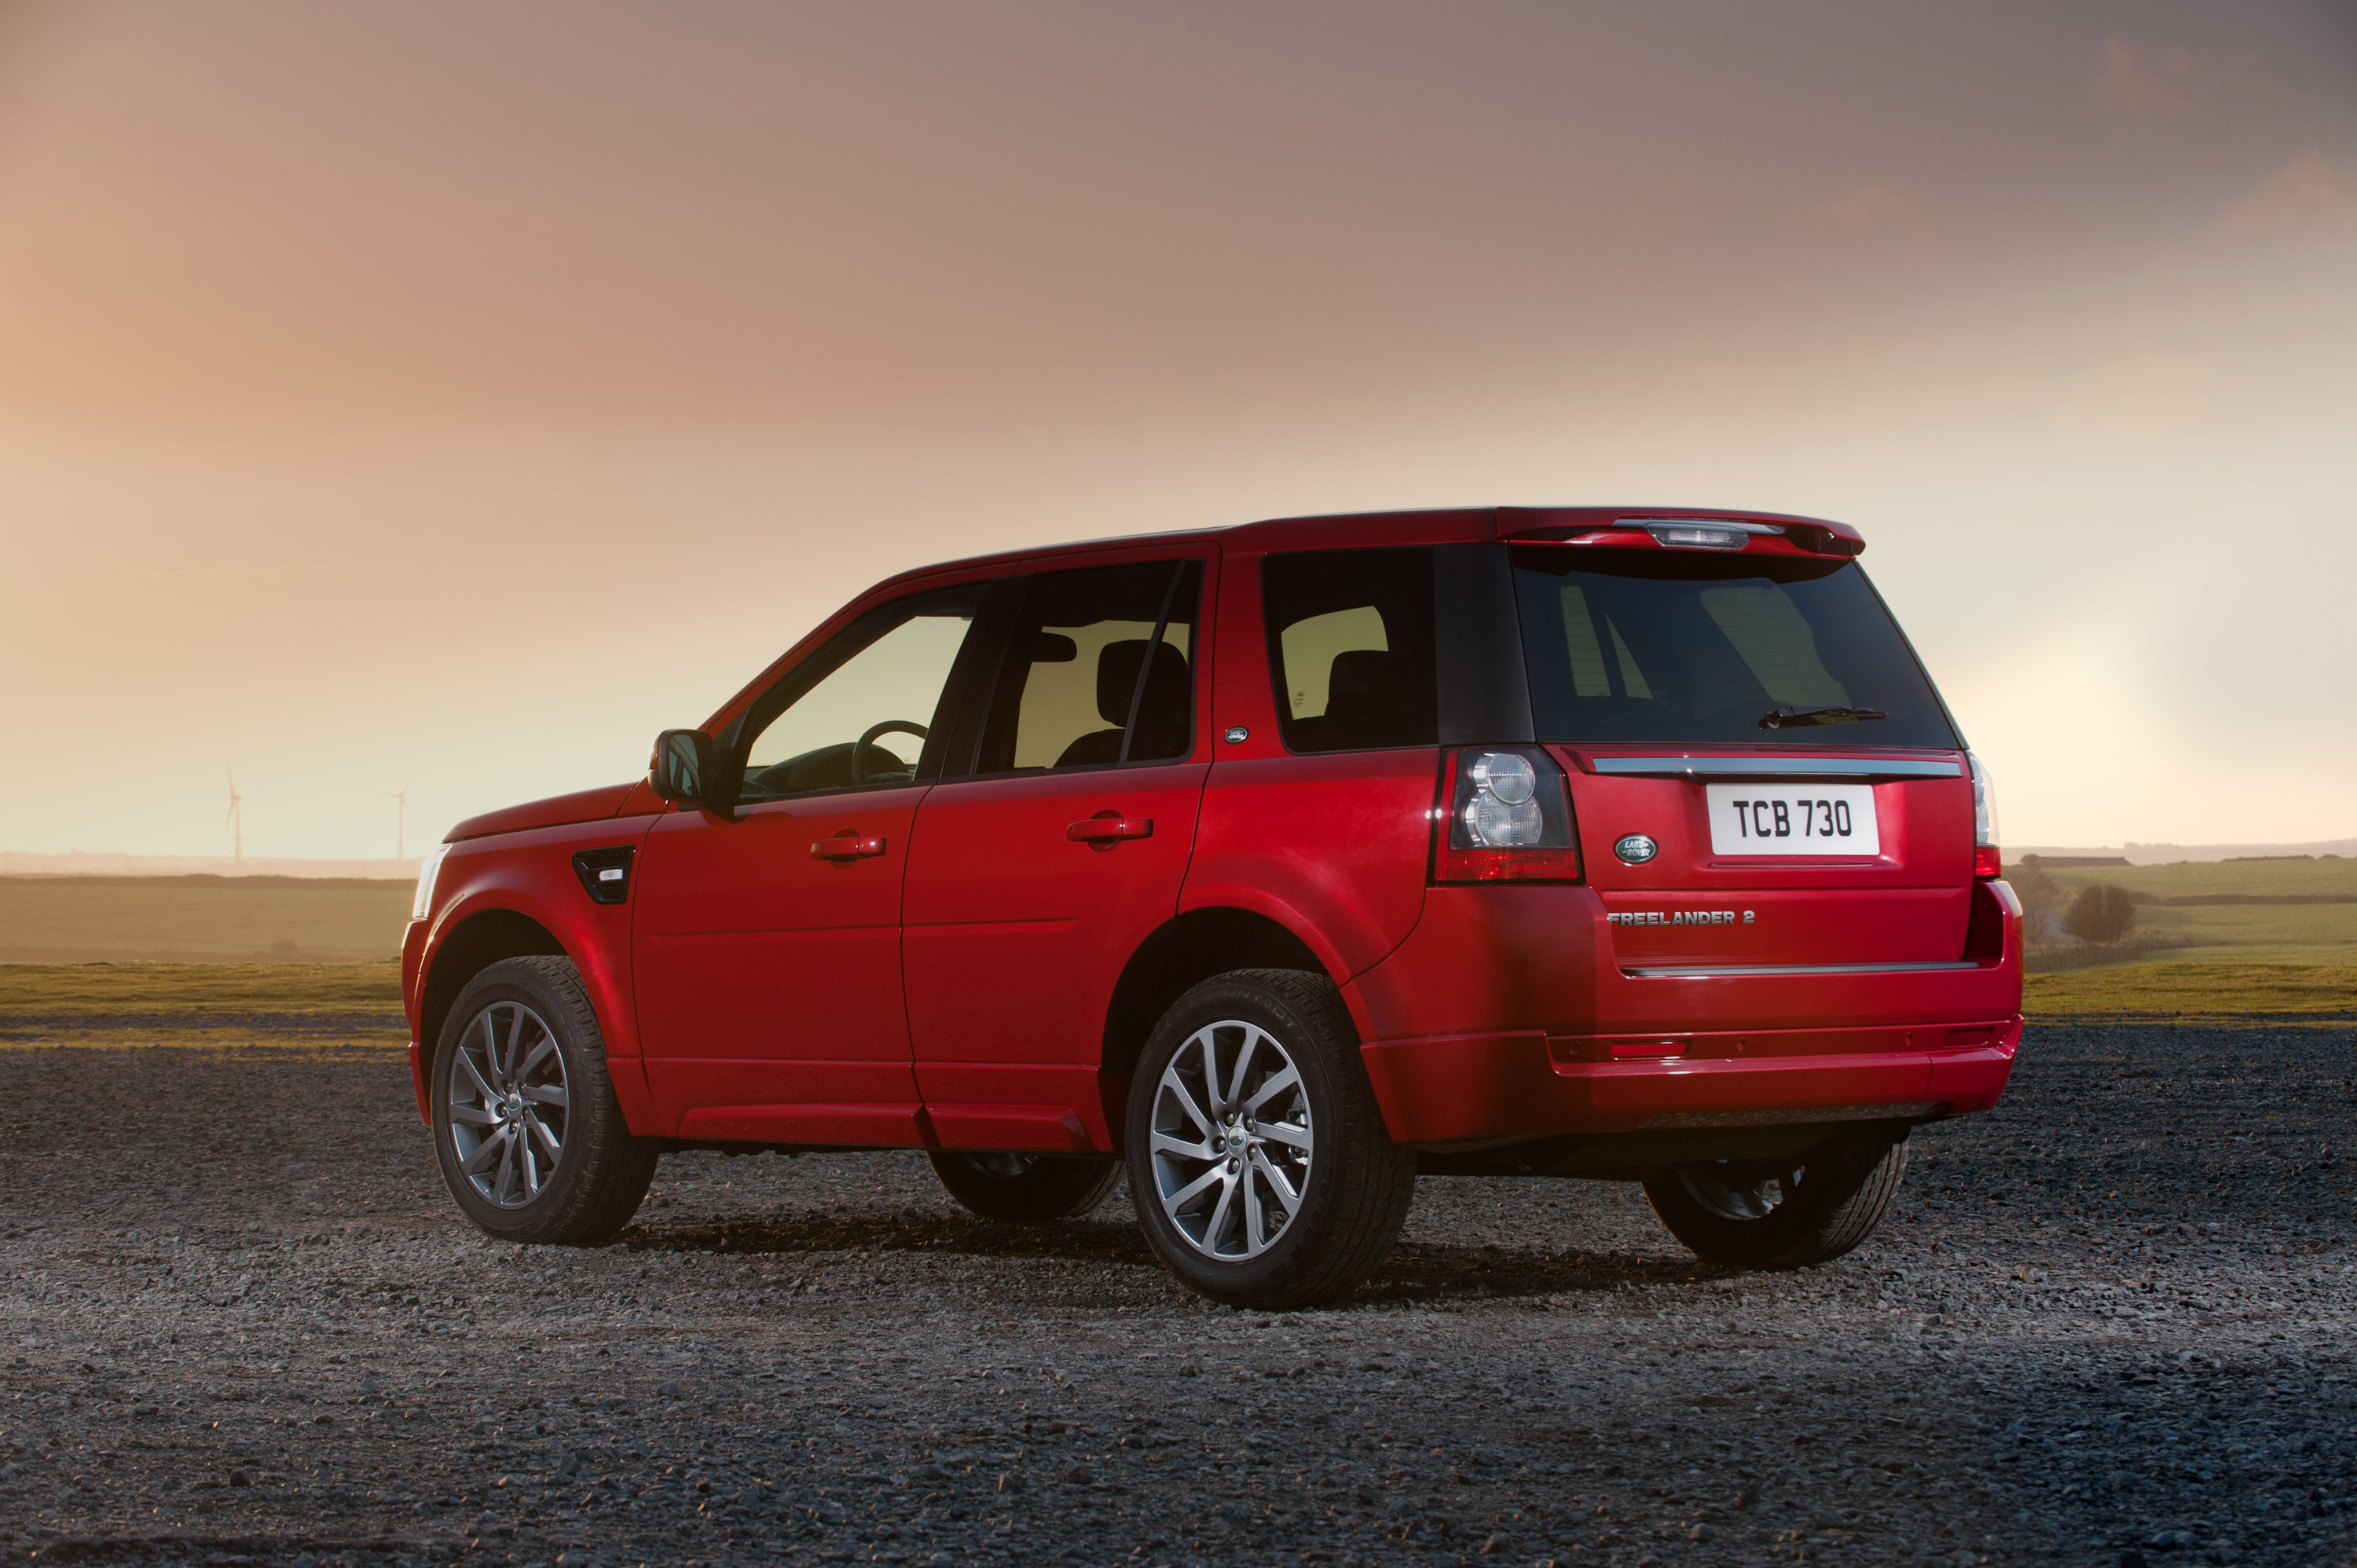 https://www.automobilesreview.com/gallery/land-rover-freelander-2-sd4-sport-limited-edition/land-rover-freelander-2-sd4-sport-limited-edition-13.jpg